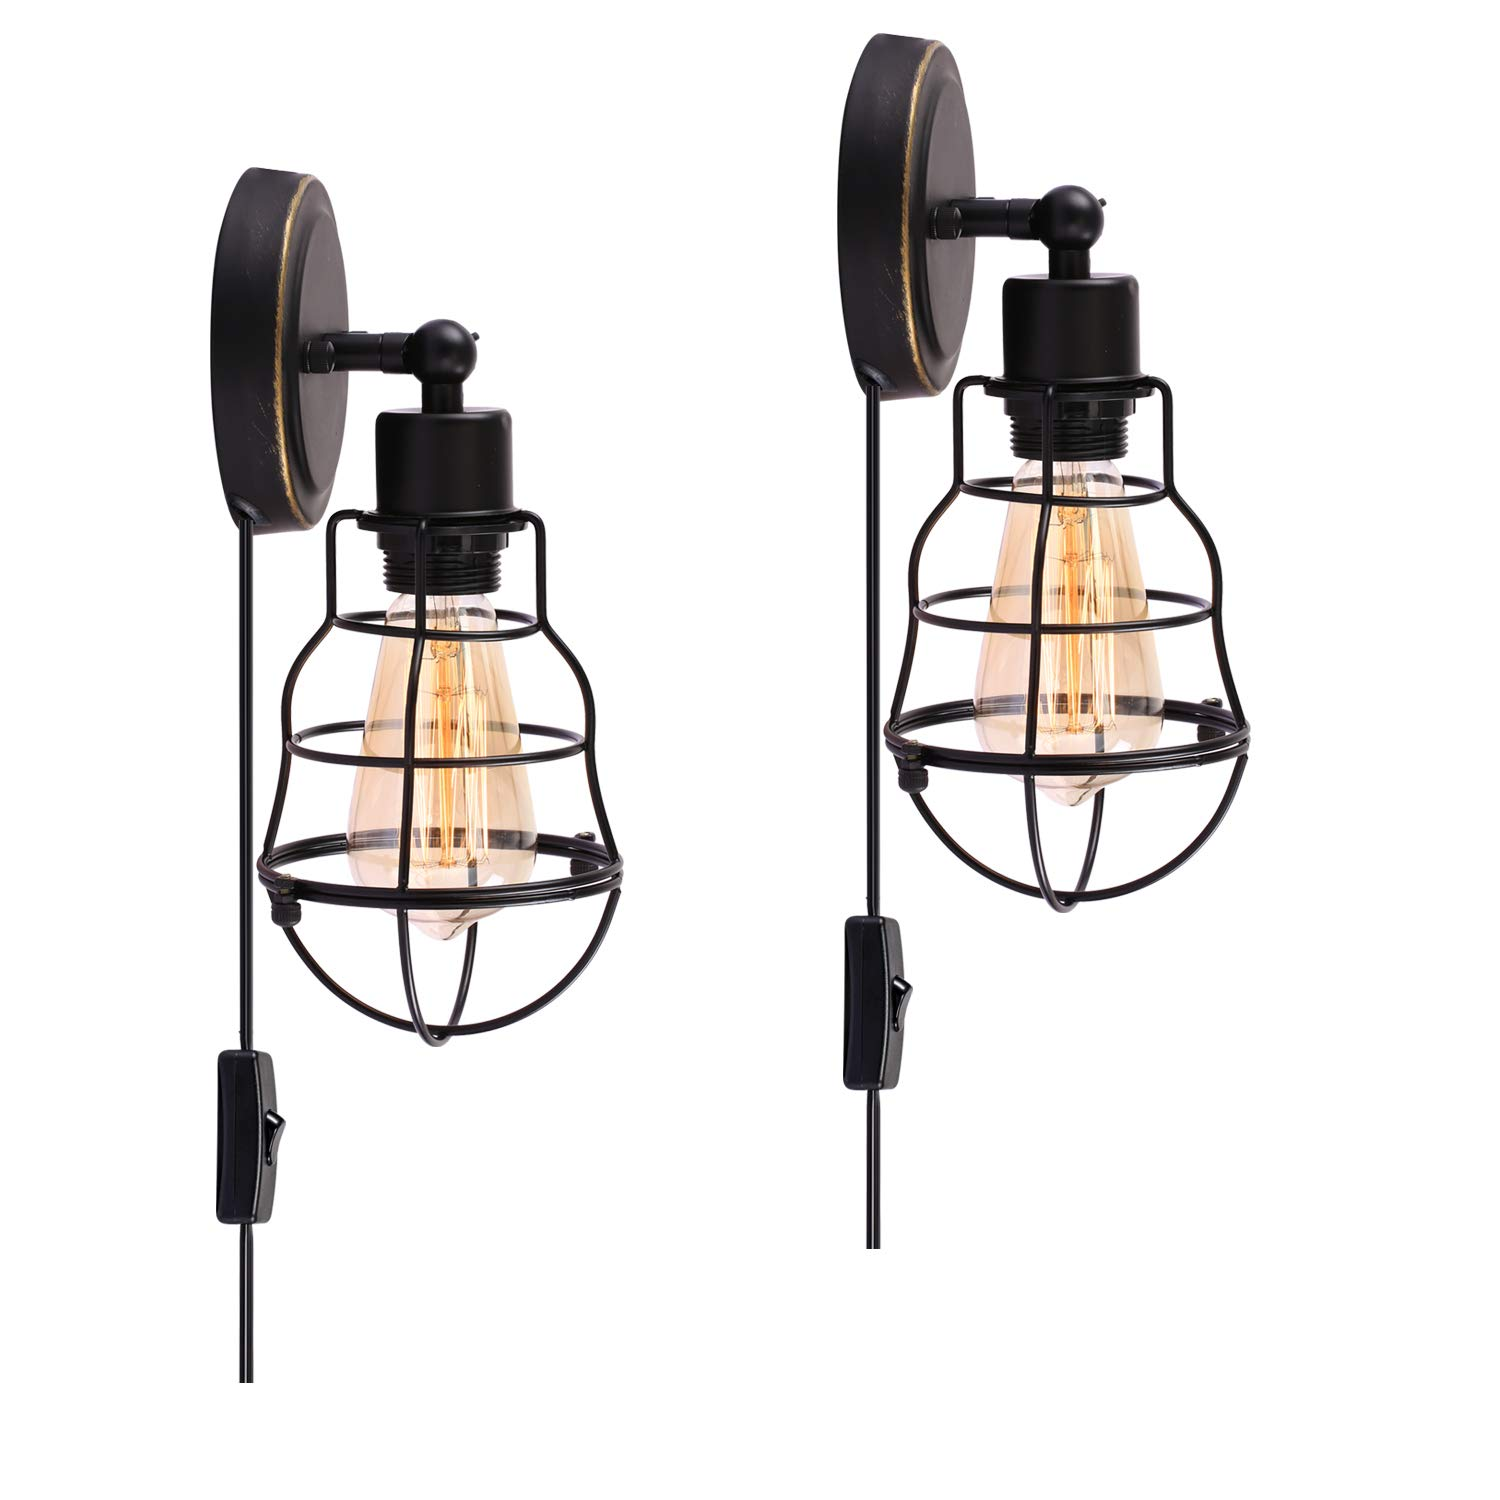 Creatgeek Industrial Charlotte Mall Wire Cage Rustic Wall San Jose Mall or Sconce Har Plug-in